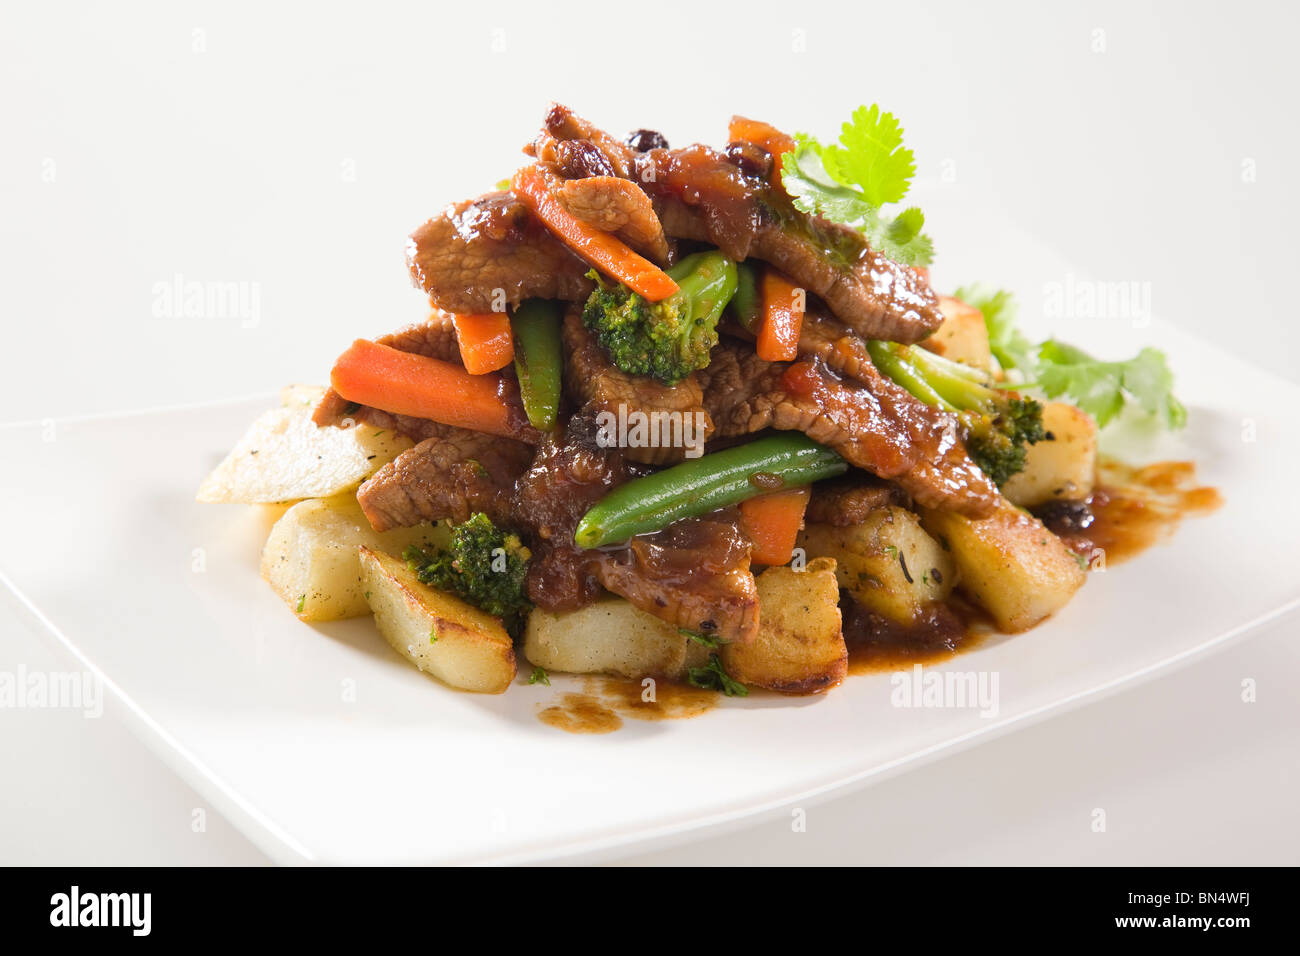 Beef Stir Fry with potatoes - Stock Image